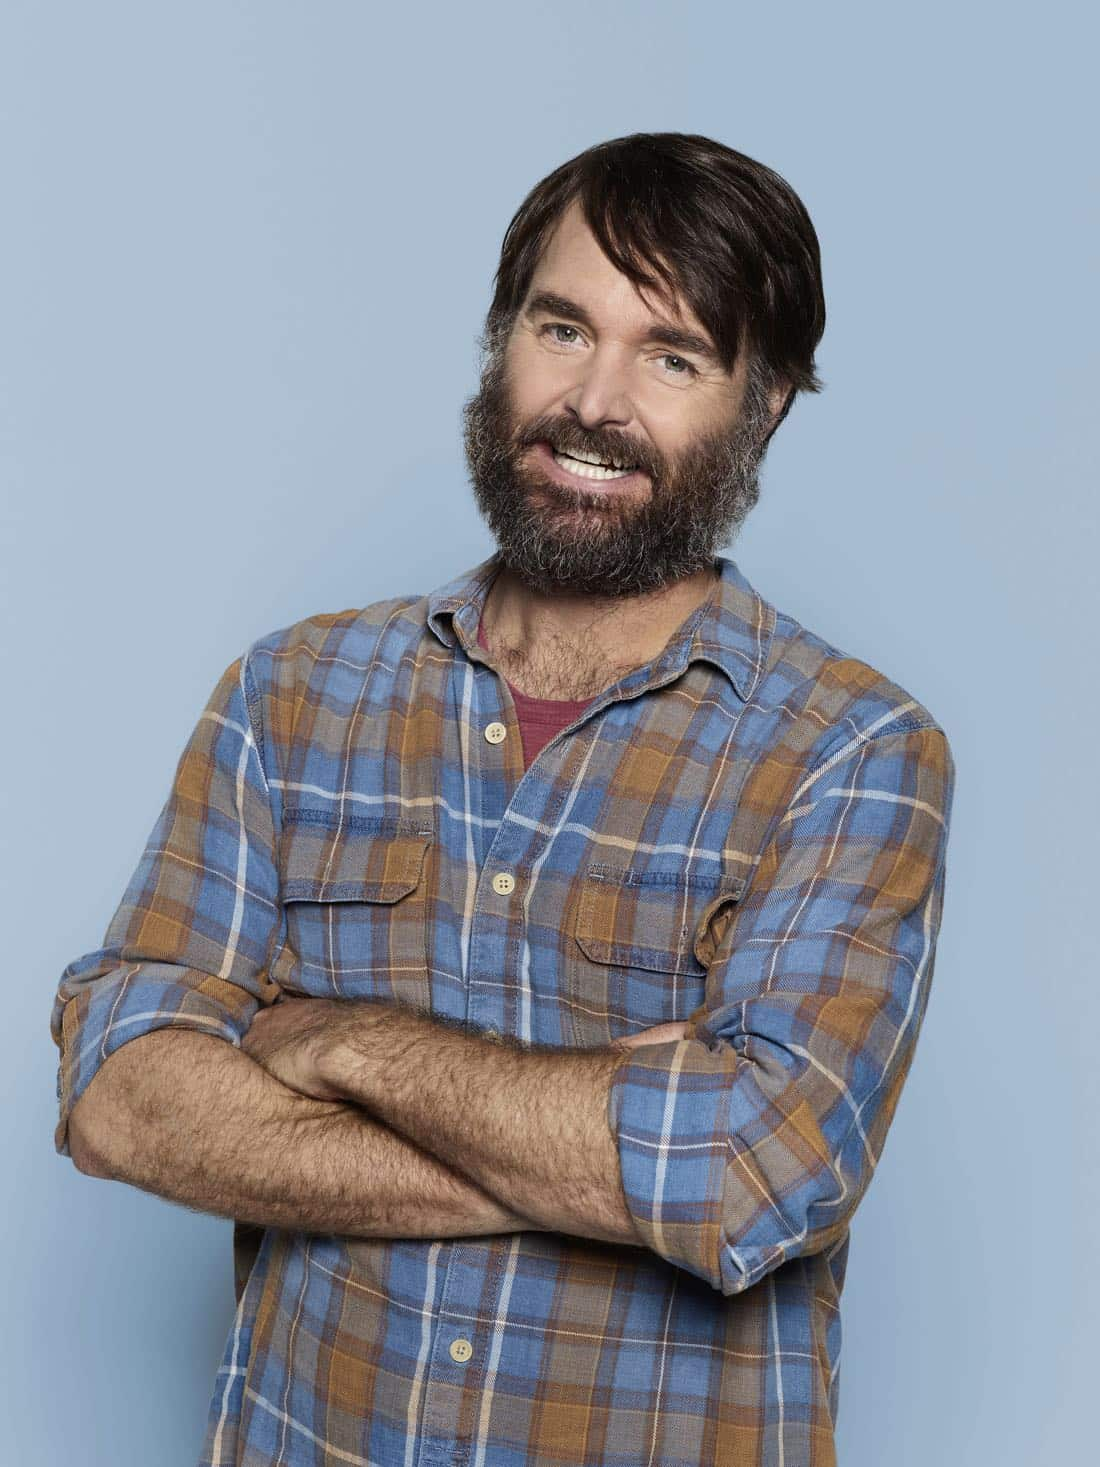 THE LAST MAN ON EARTH: Will Forte as Phil (A.K.A. Tandy) Miller in the LAST MAN ON EARTH season four premiere Sunday, Oct. 1 (9:30-10:00 PM ET/PT) on FOX. ©2017 Fox Broadcasting Company. Cr: Pamela Littky/FOX